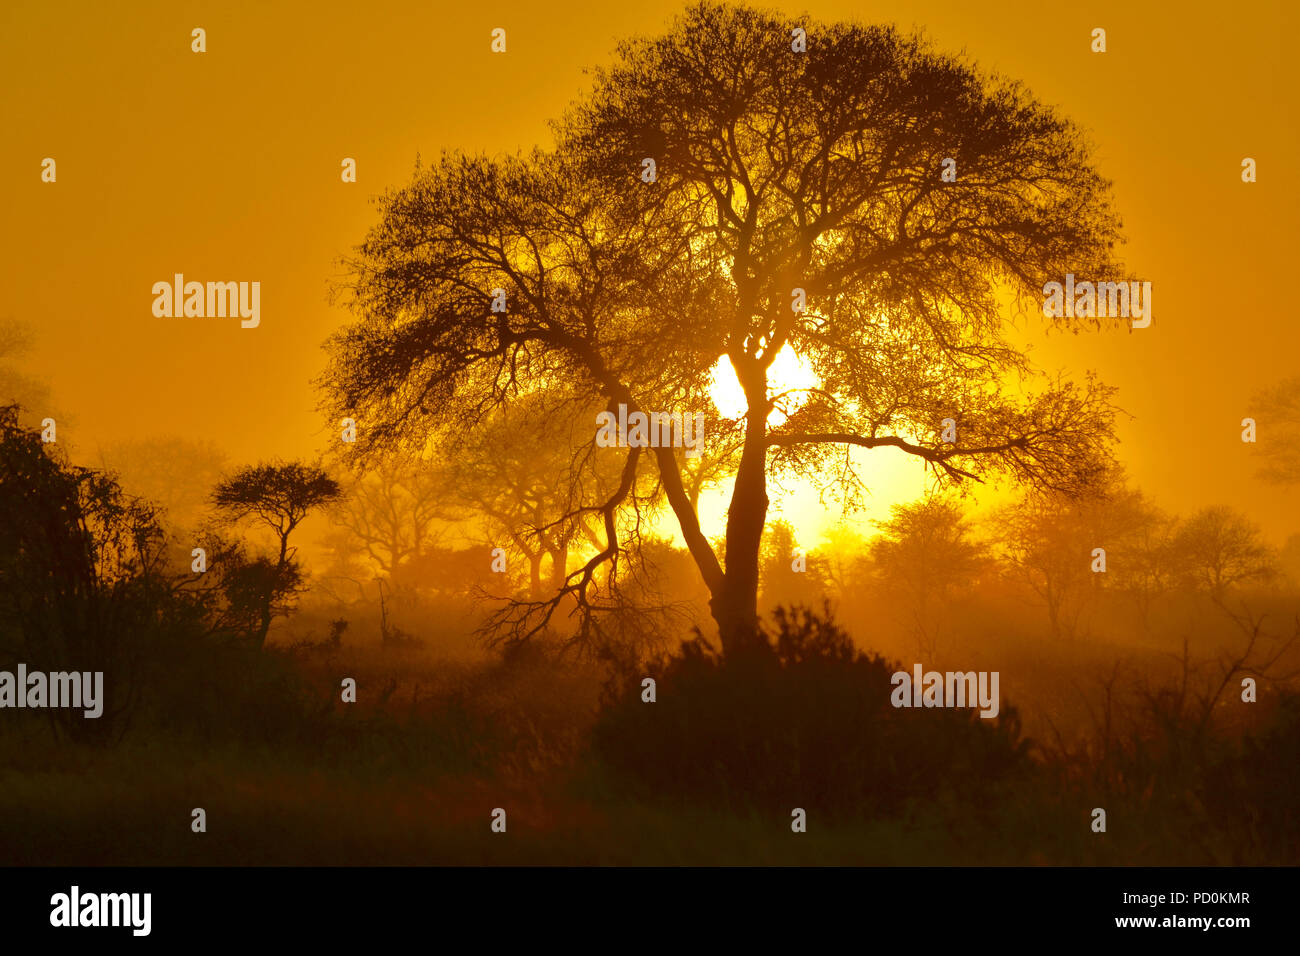 South Africa, a fantastic travel destination to experience third and first world together. Ethereal sunrise on misty morning in Kruger National Park. - Stock Image